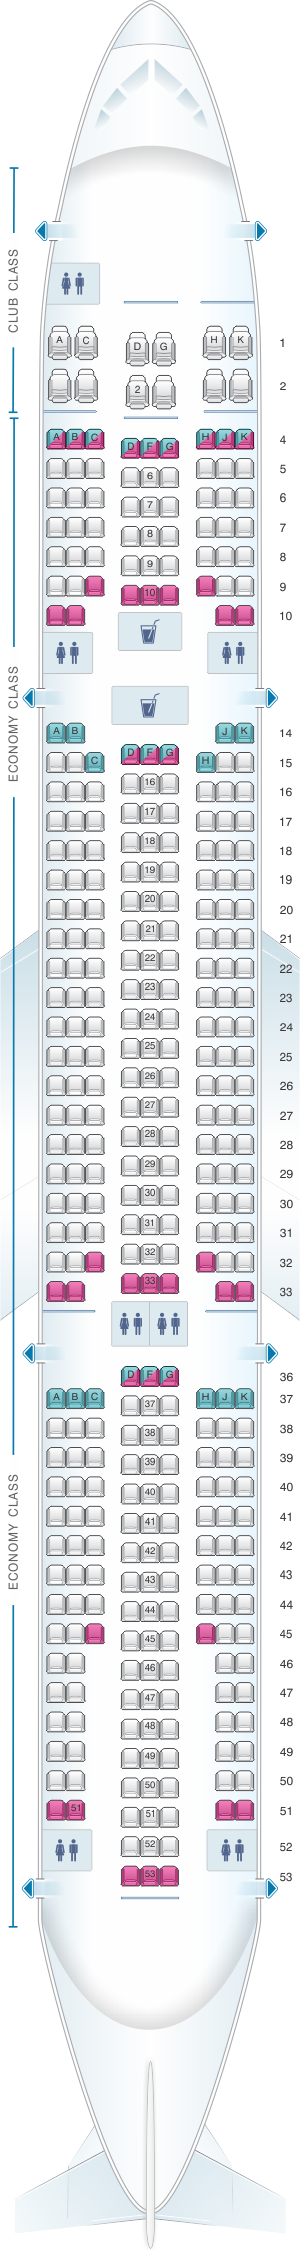 Seat map for Air Transat Airbus A330 300 375pax